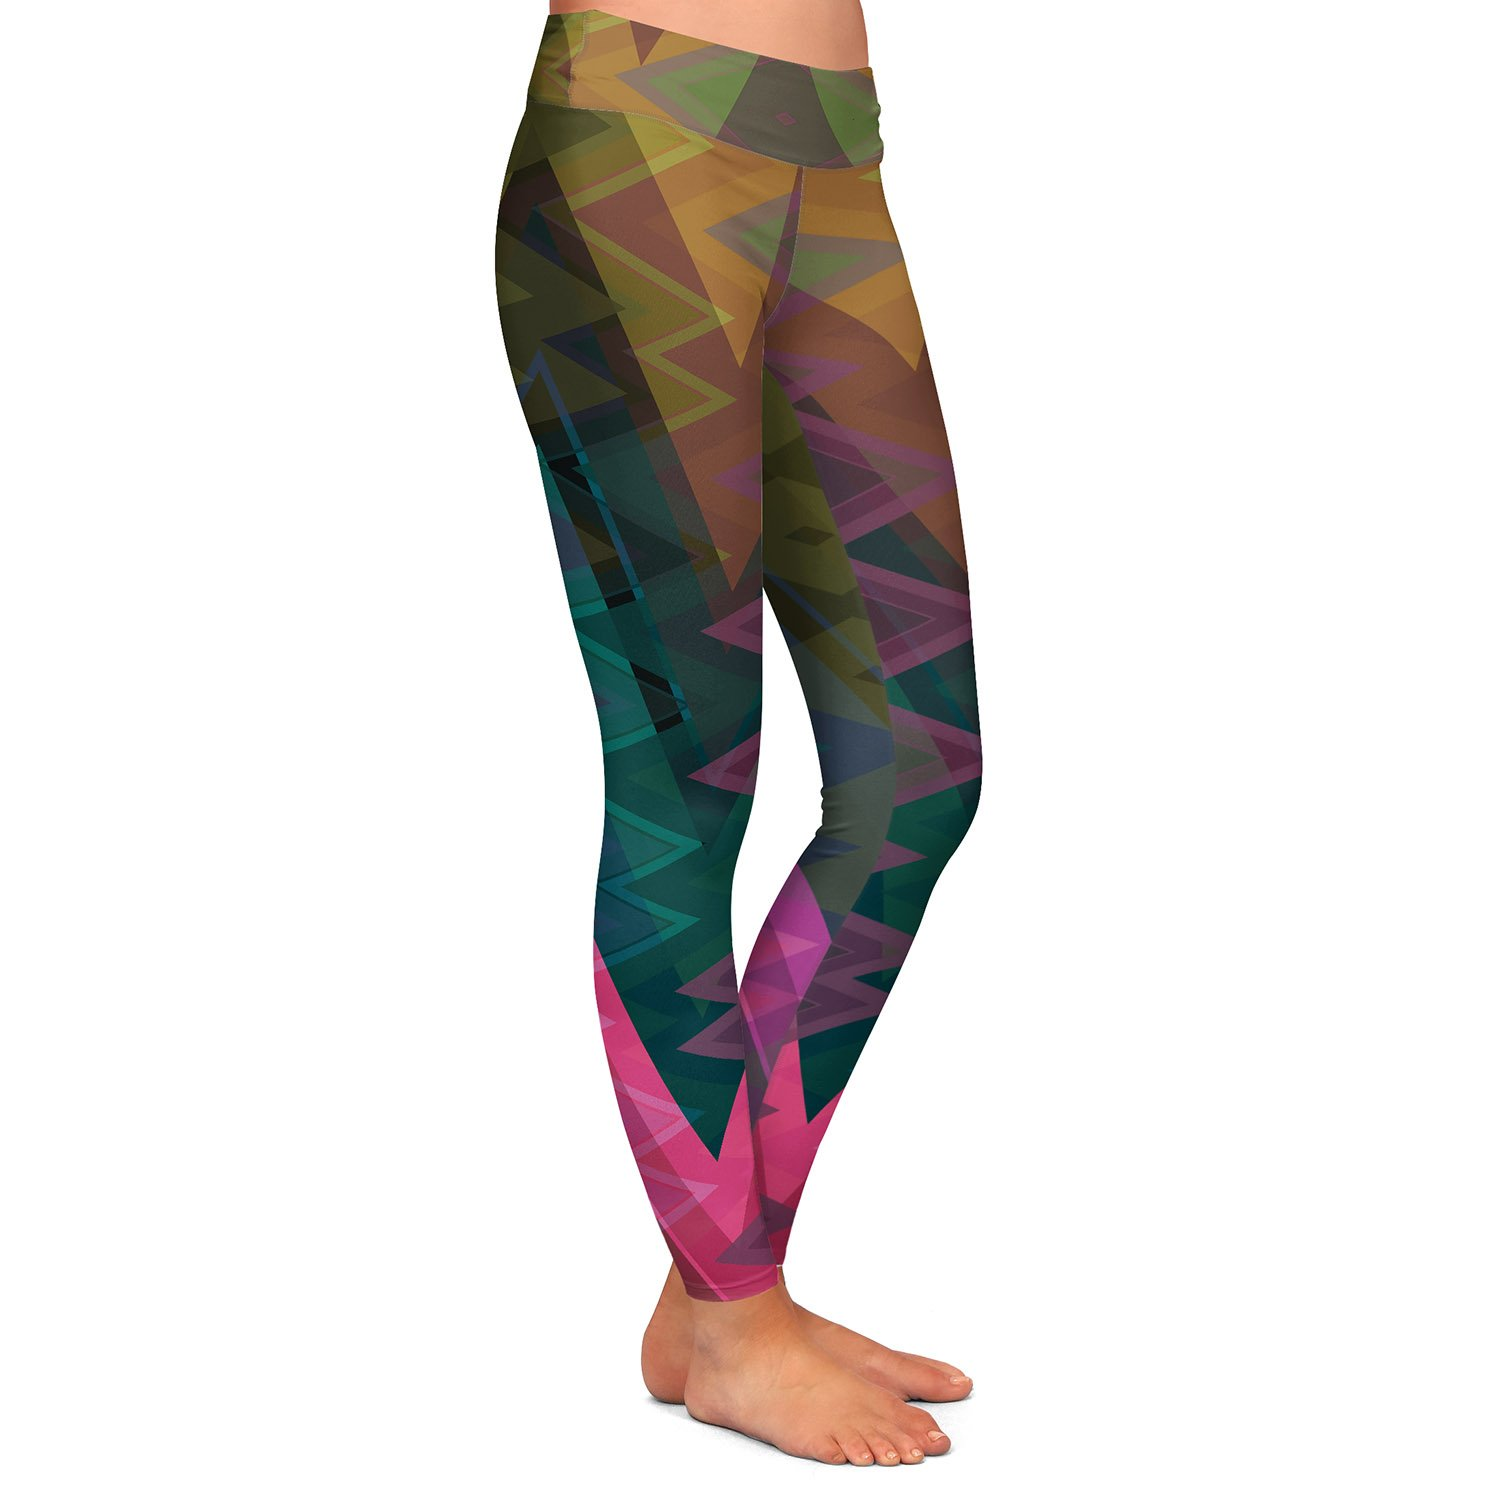 Entrancement Athletic Yoga Leggings from DiaNoche Designs by Christy Leigh